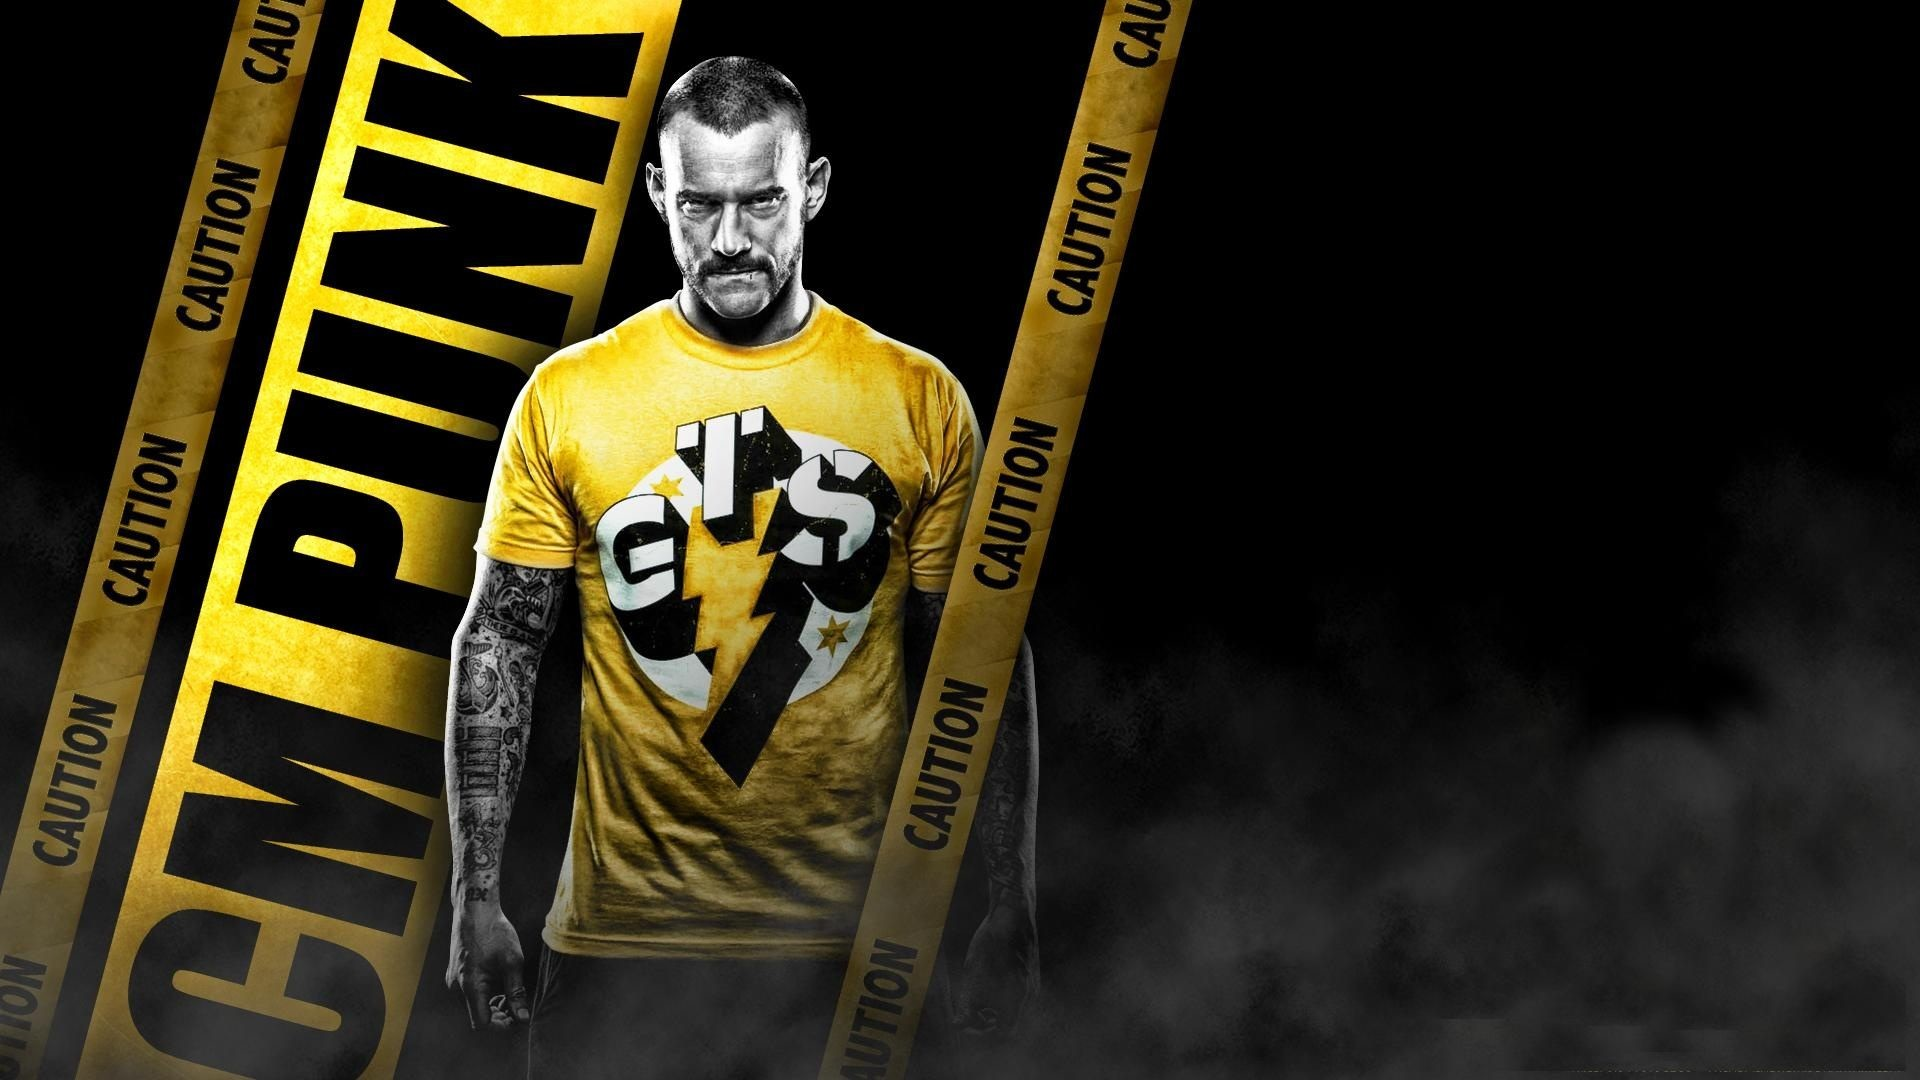 Tag: HDQ WWE Wallpapers, Backgrounds and Pictures for Free, Josephina  Crutchfield